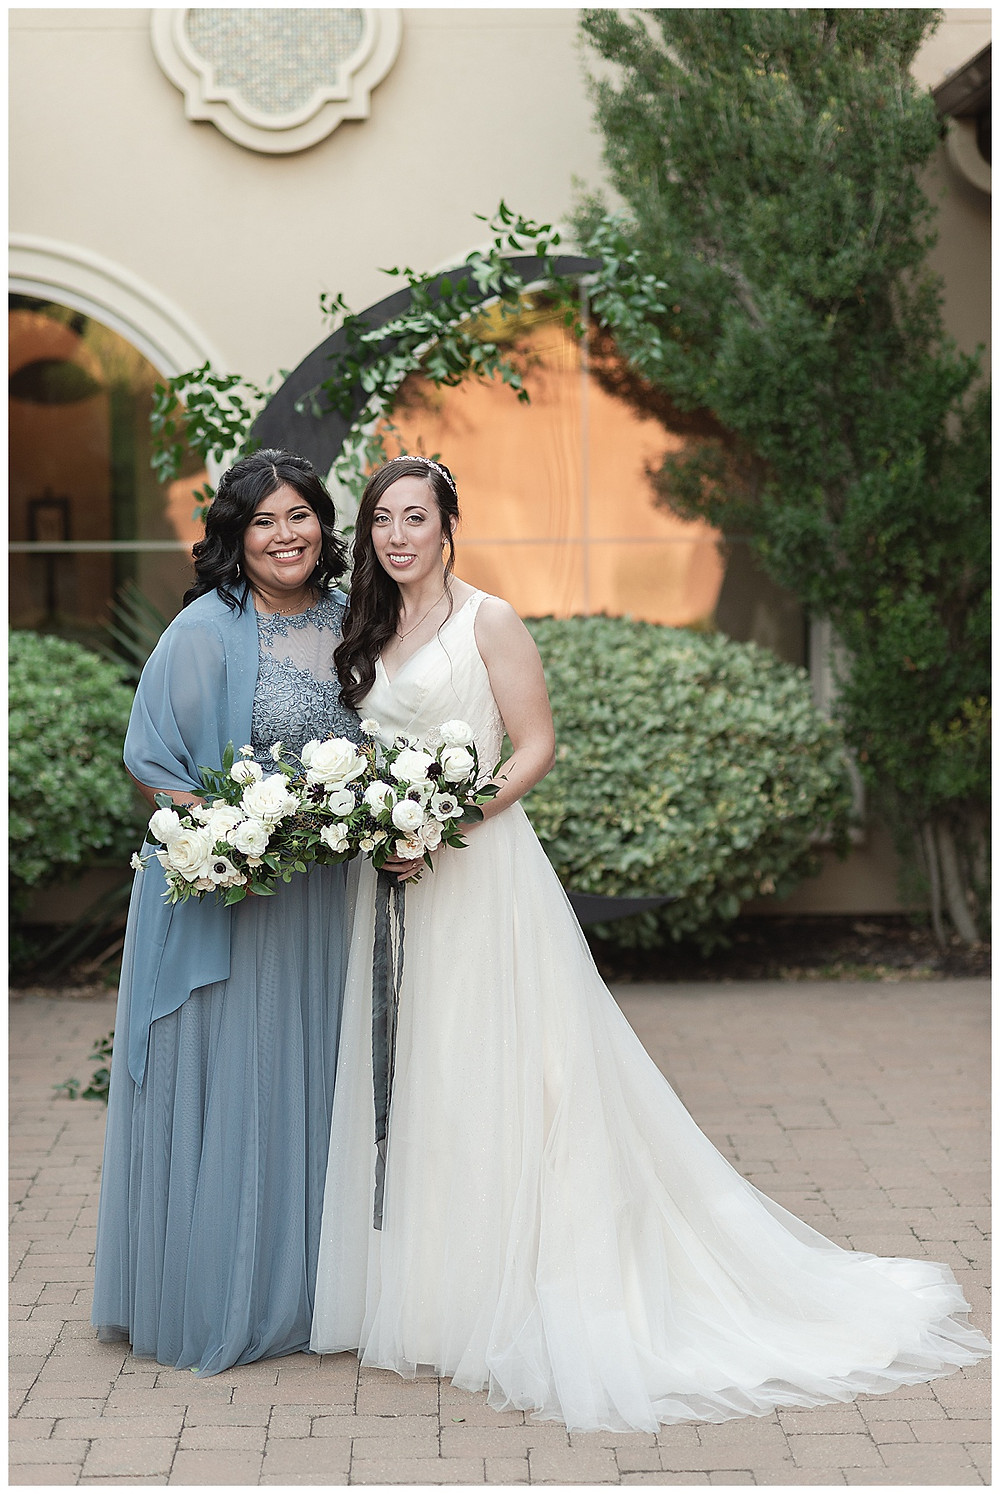 Chapel Ana Villa, The colony Texas, dallas wedding, dallas wedding photography, dallas wedding venue , wedding party formal, blue bridesmaids dresses, with blue shawls white flower bouquets , white roses and spray roses